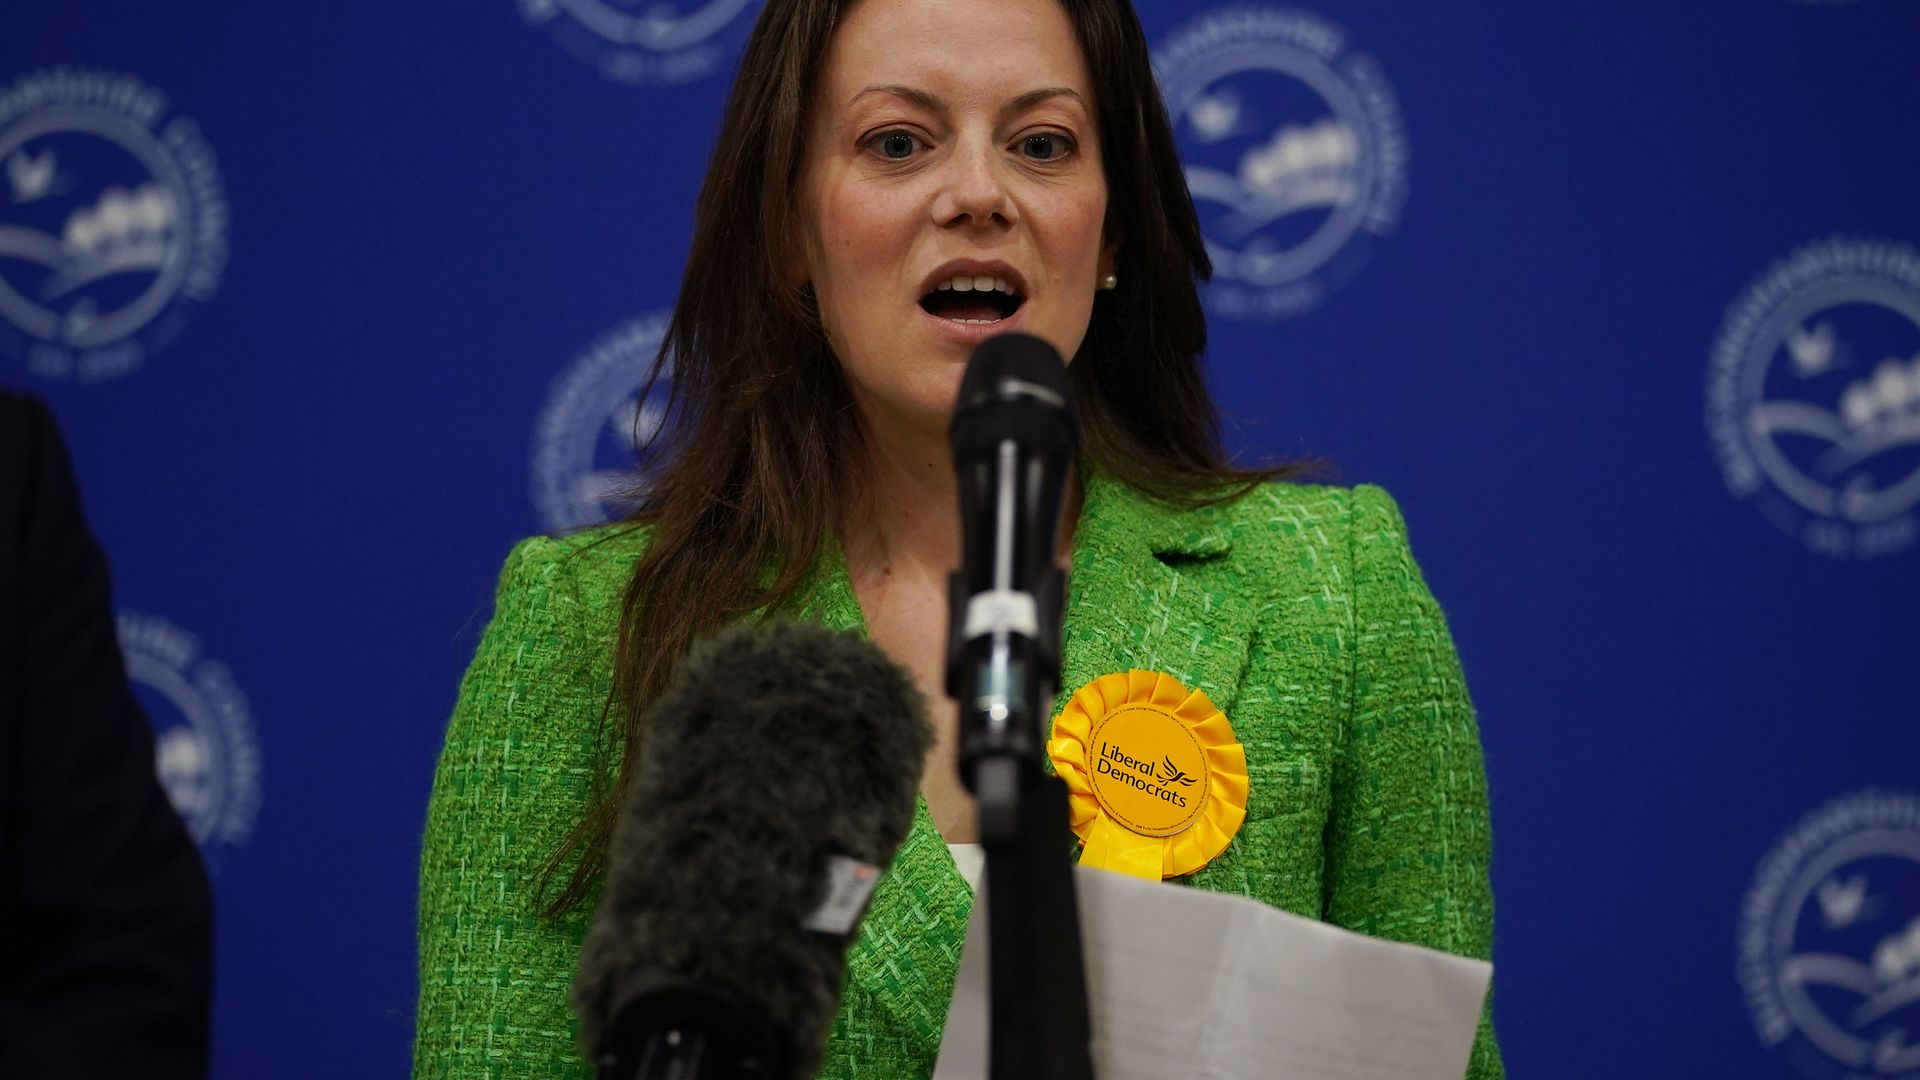 Sarah Green of the Liberal Democrats makes a speech after being declared winner in the Chesham and Amersham by-election at Chesham Leisure Centre in Chesham, Buckinghamshire - Credit: PA